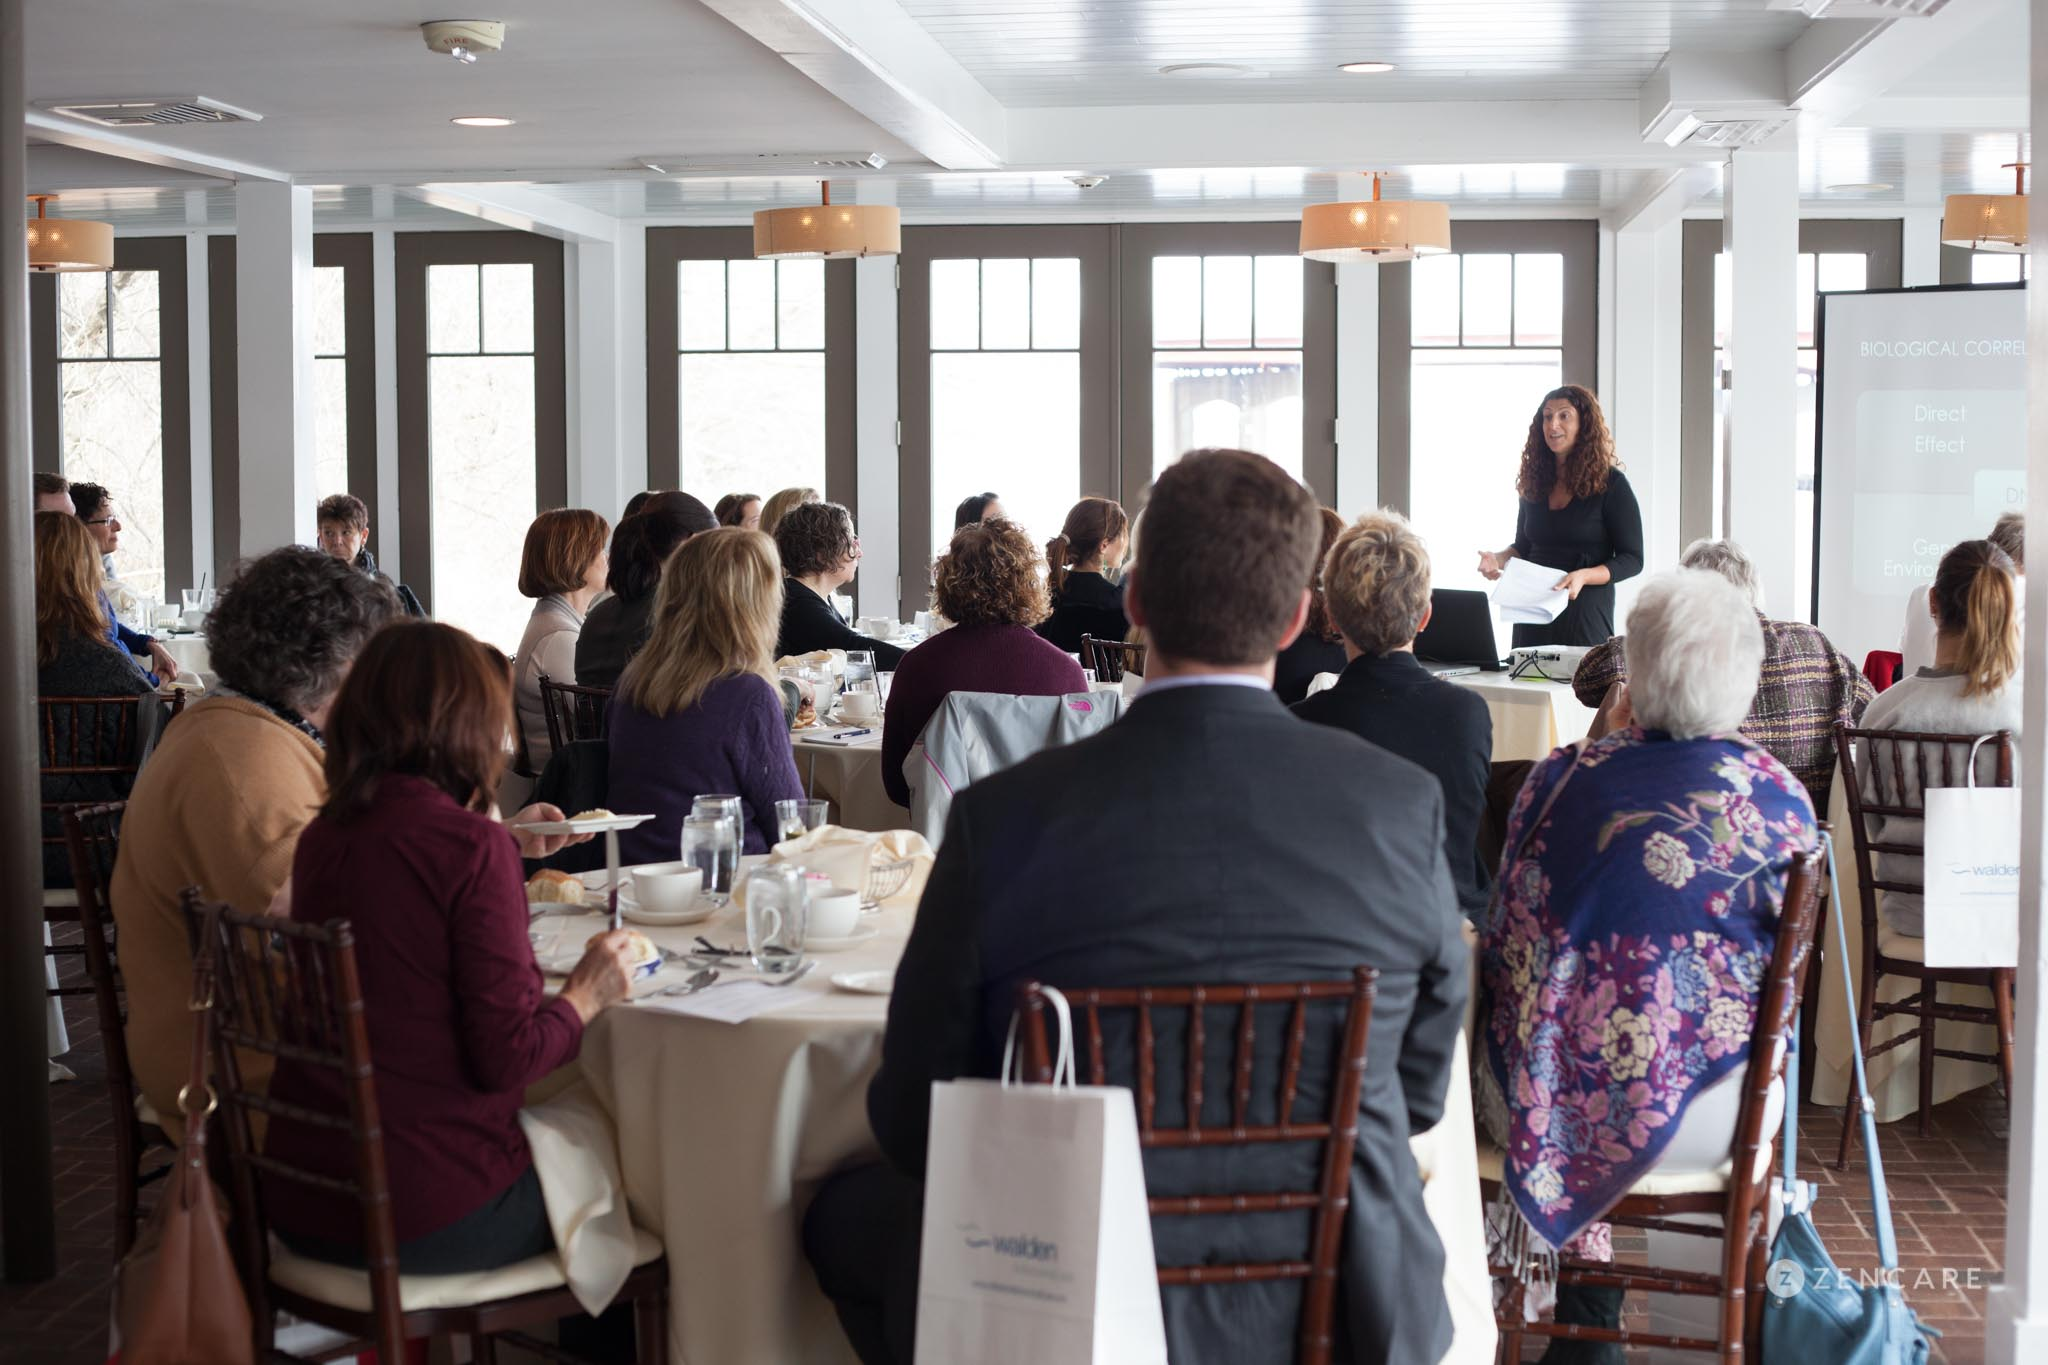 Tangled_Young adult eating disorder and addiction event_Walden_Granite_Zencare-9.jpg